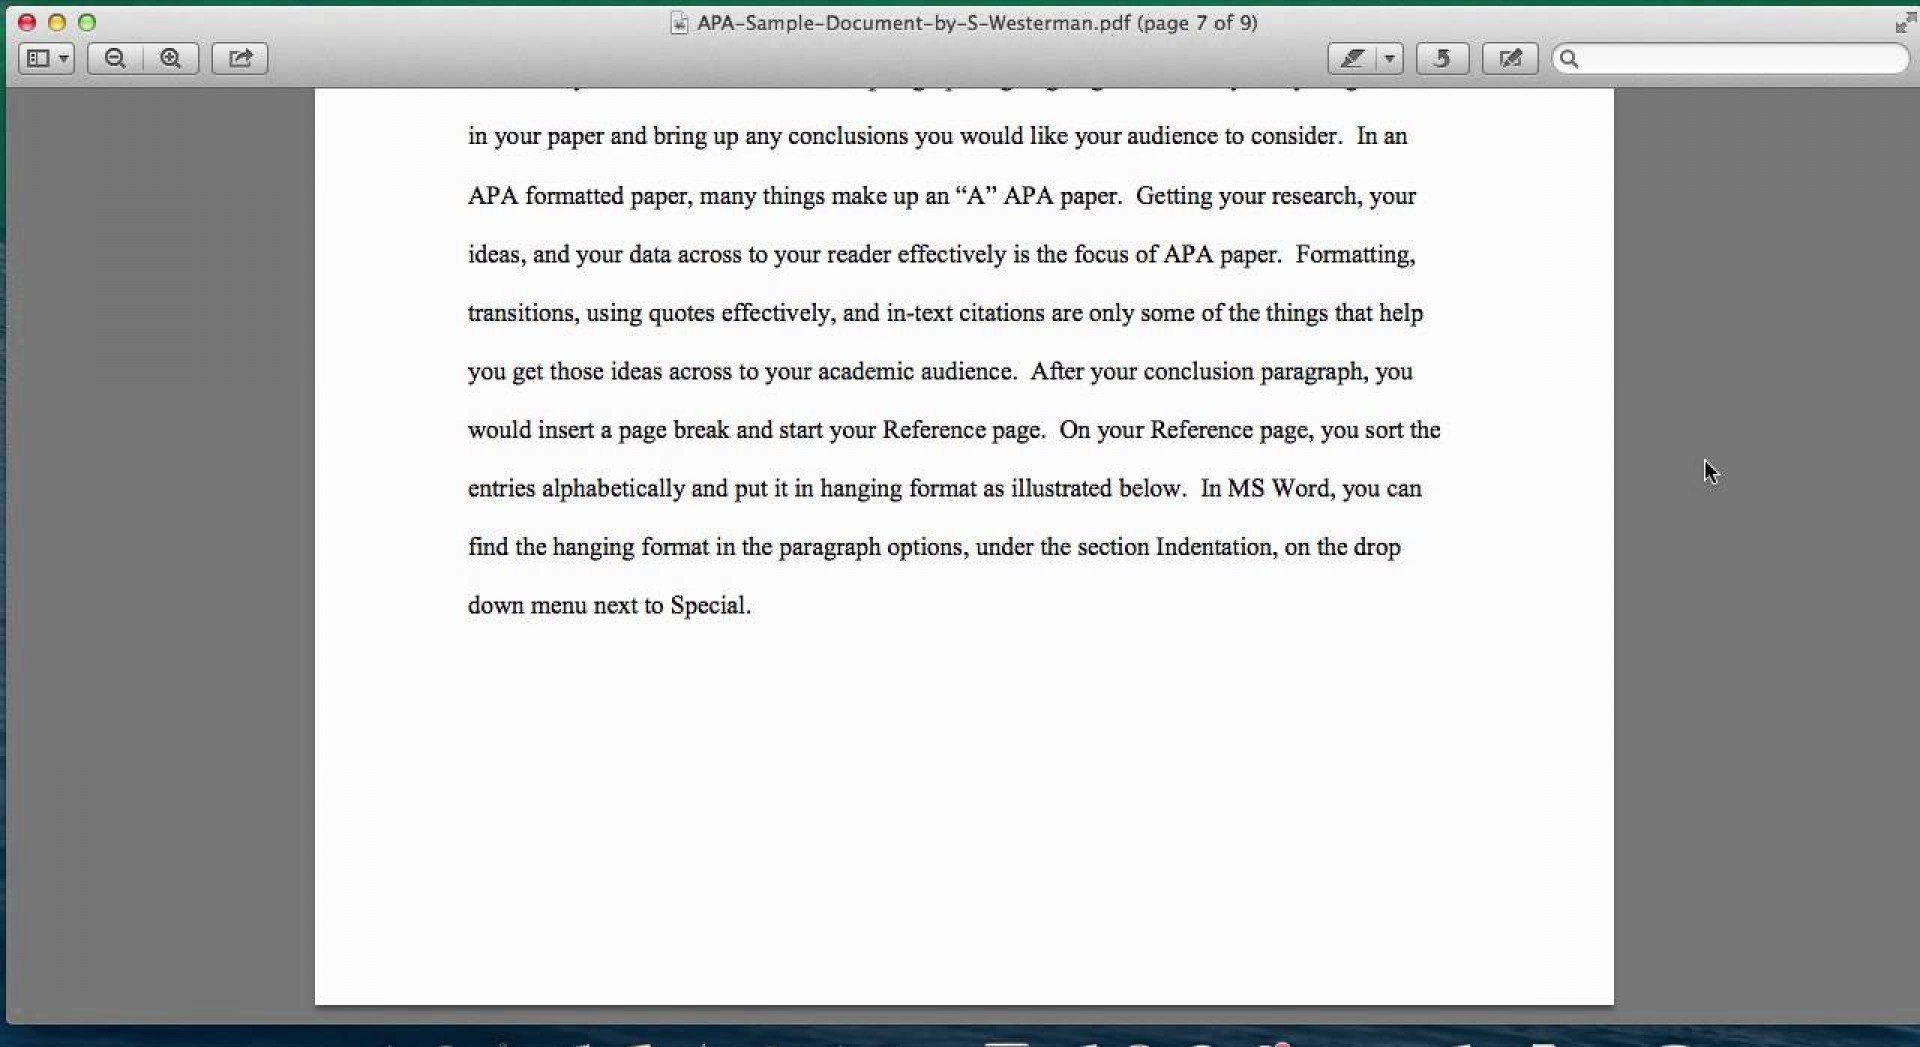 004 Maxresdefault Research Paper Apa Example Unusual Youtube 1920